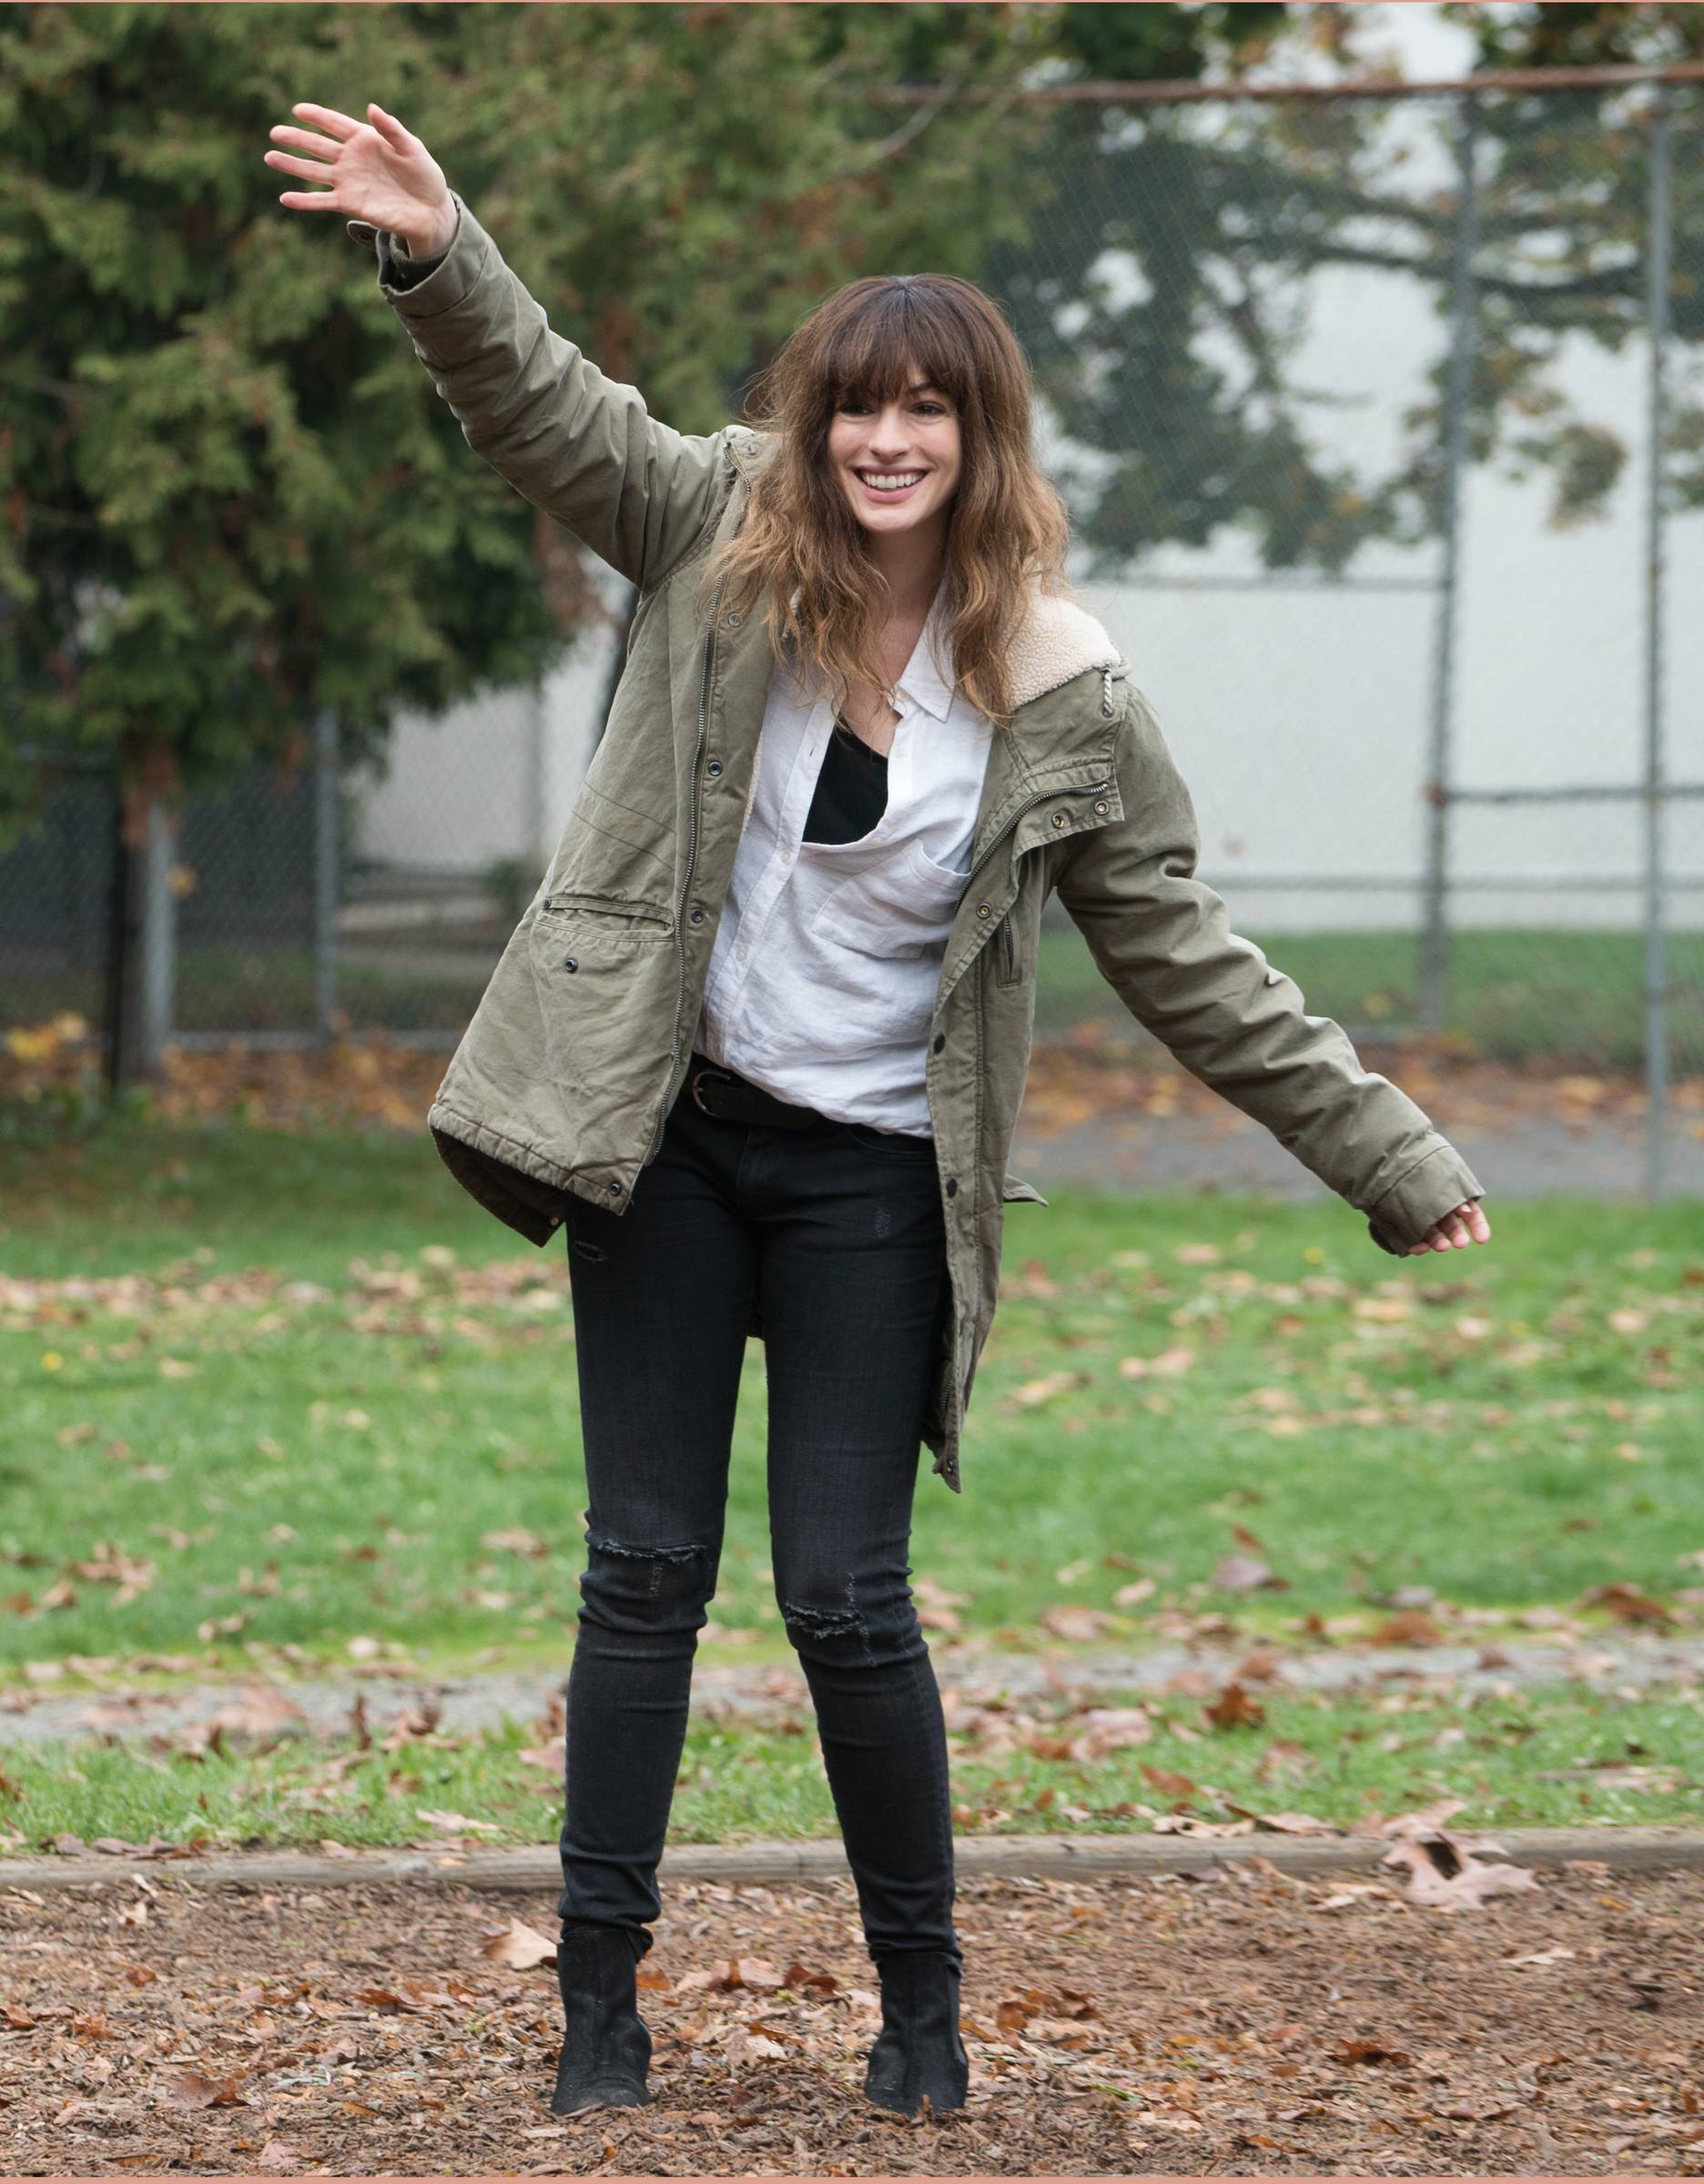 Anne Hathaway in Colossal (2017).